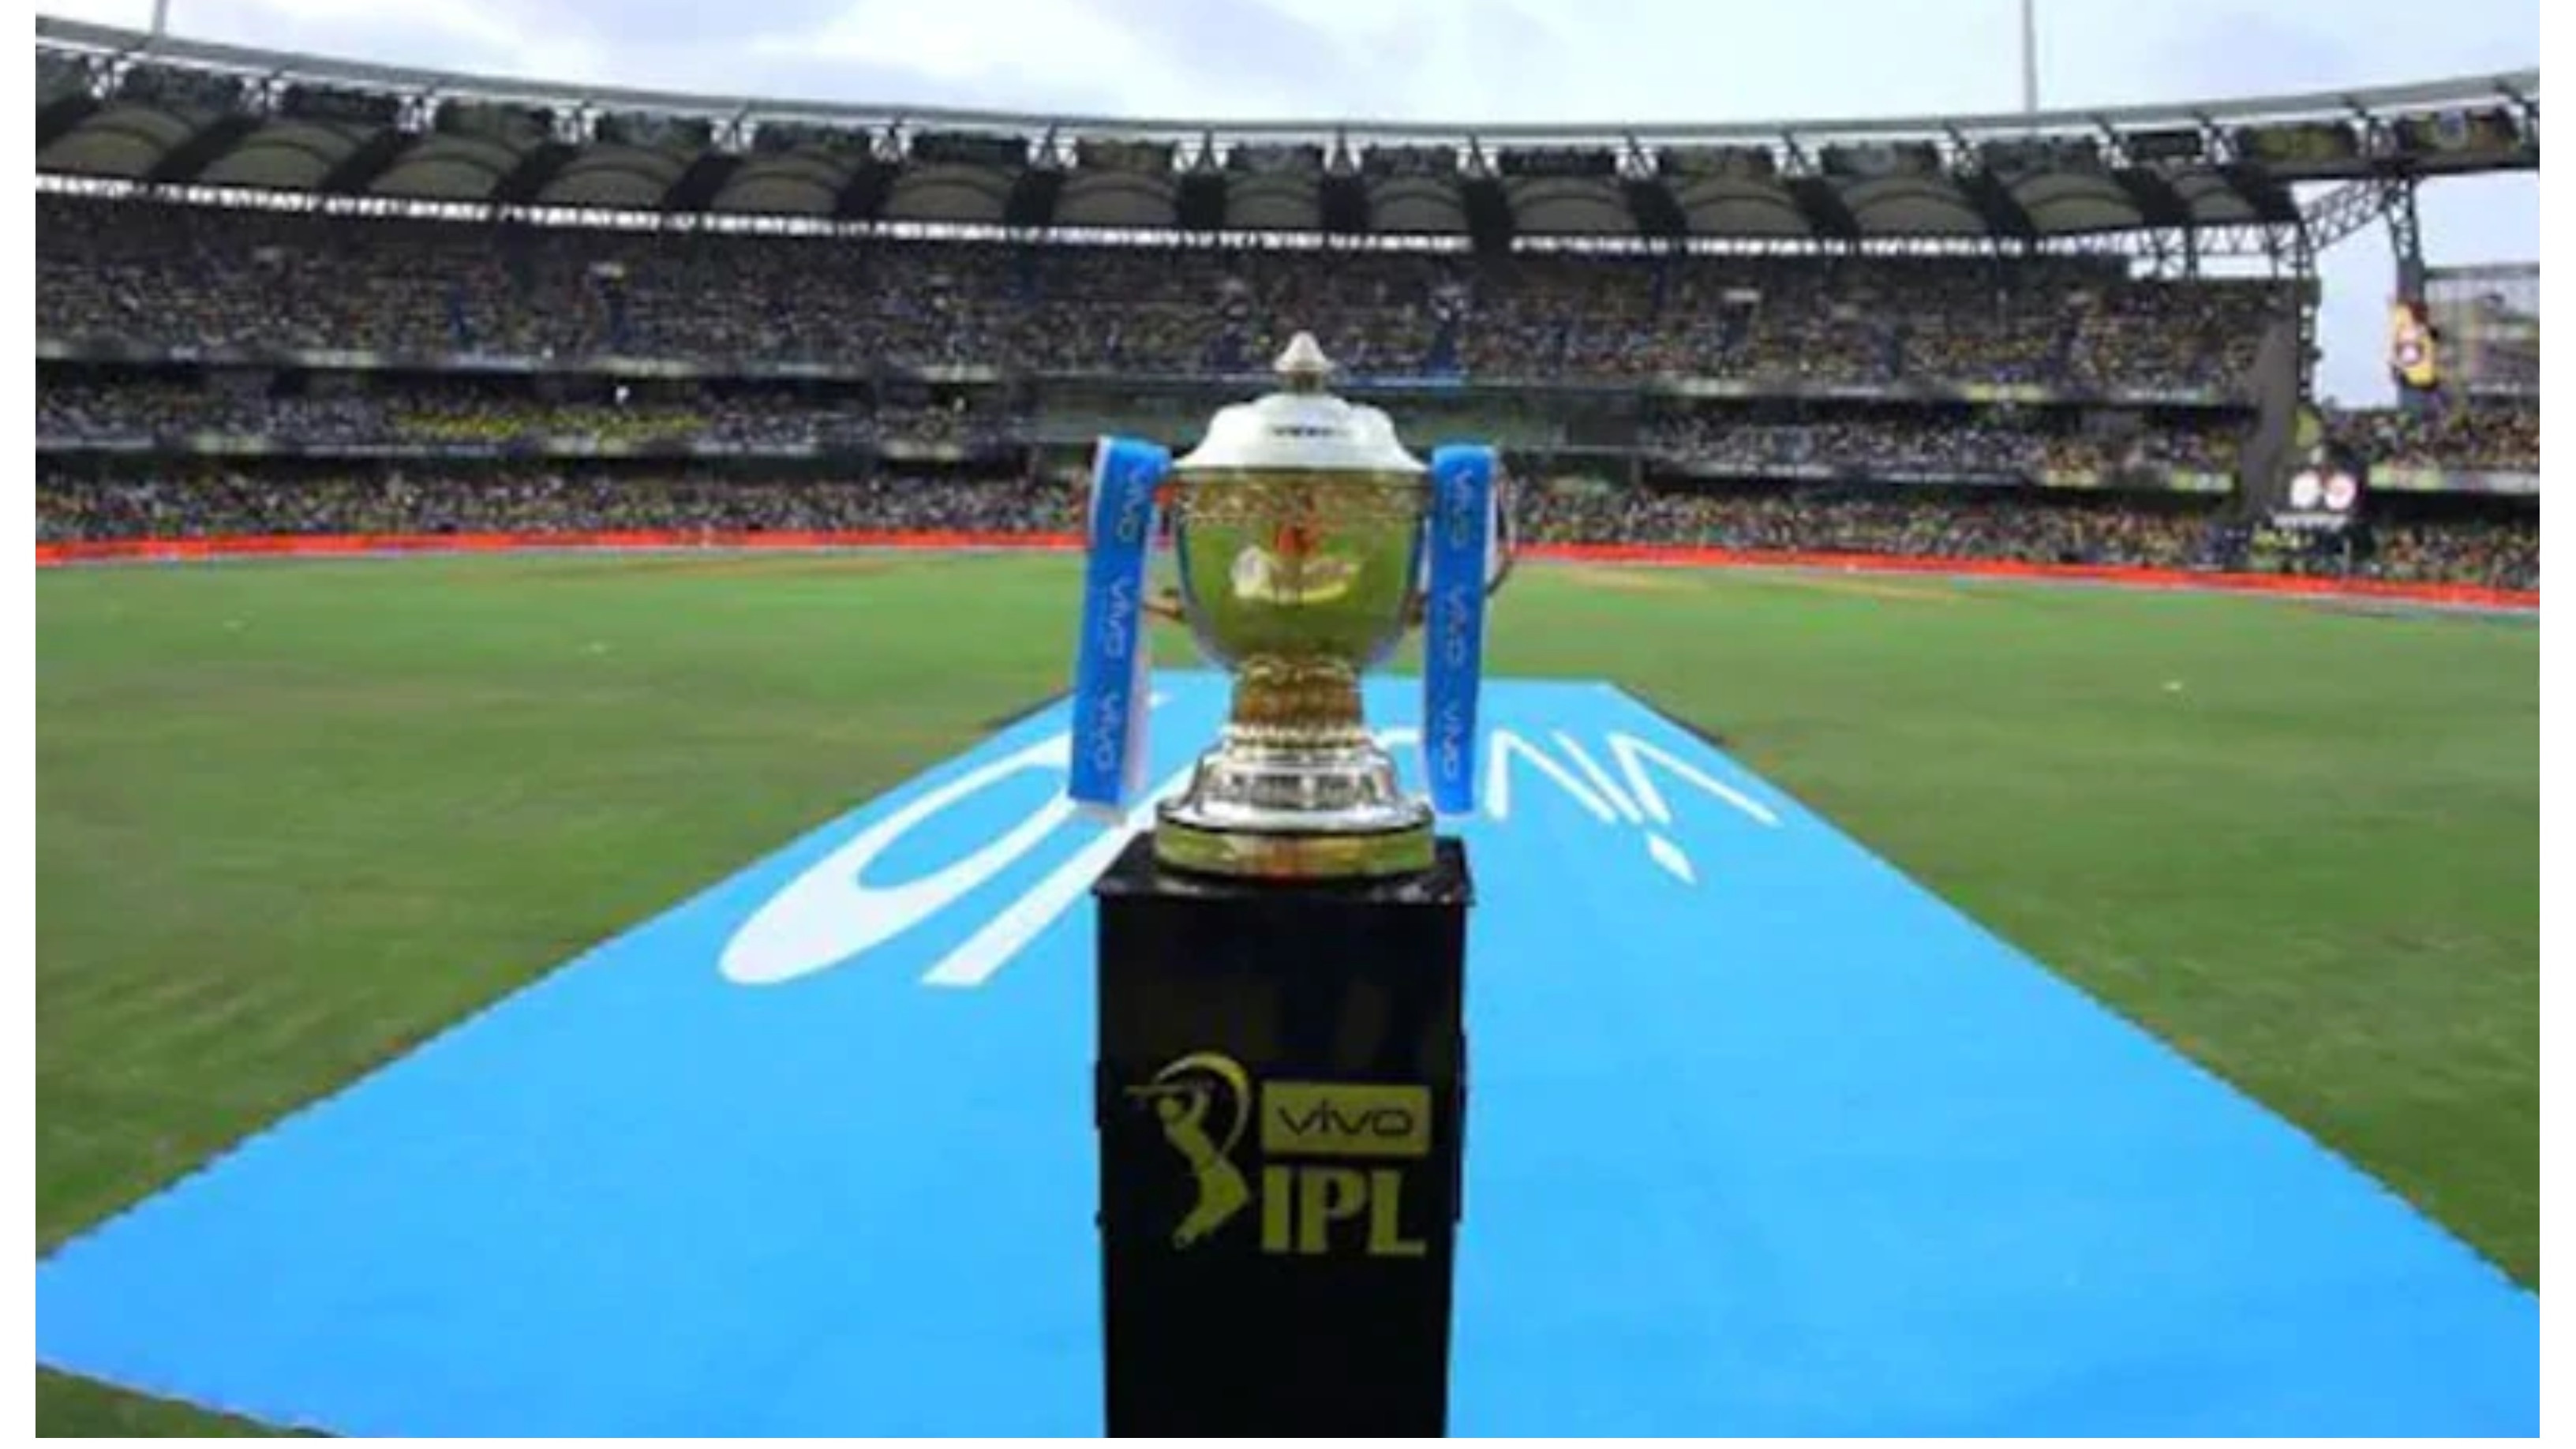 IPL 2021: Permission has been granted for Mumbai matches, confirms Maharashtra Cabinet Minister